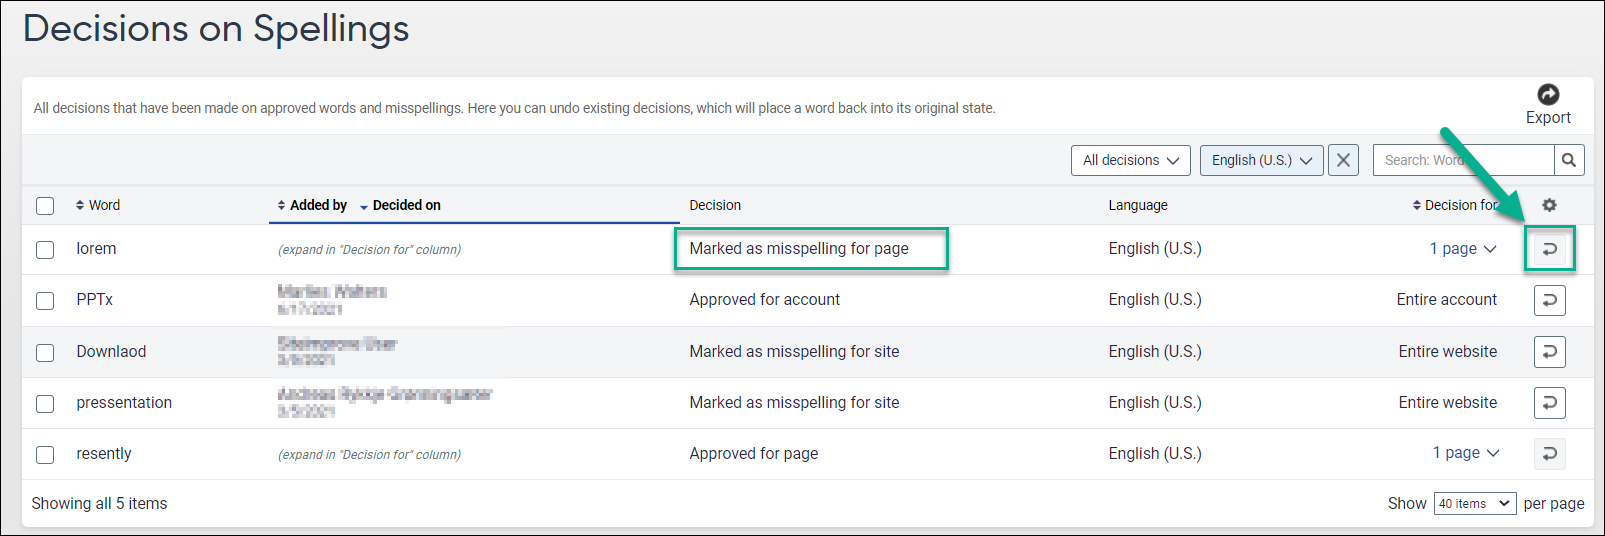 Decisions_on_Spellings page in platform